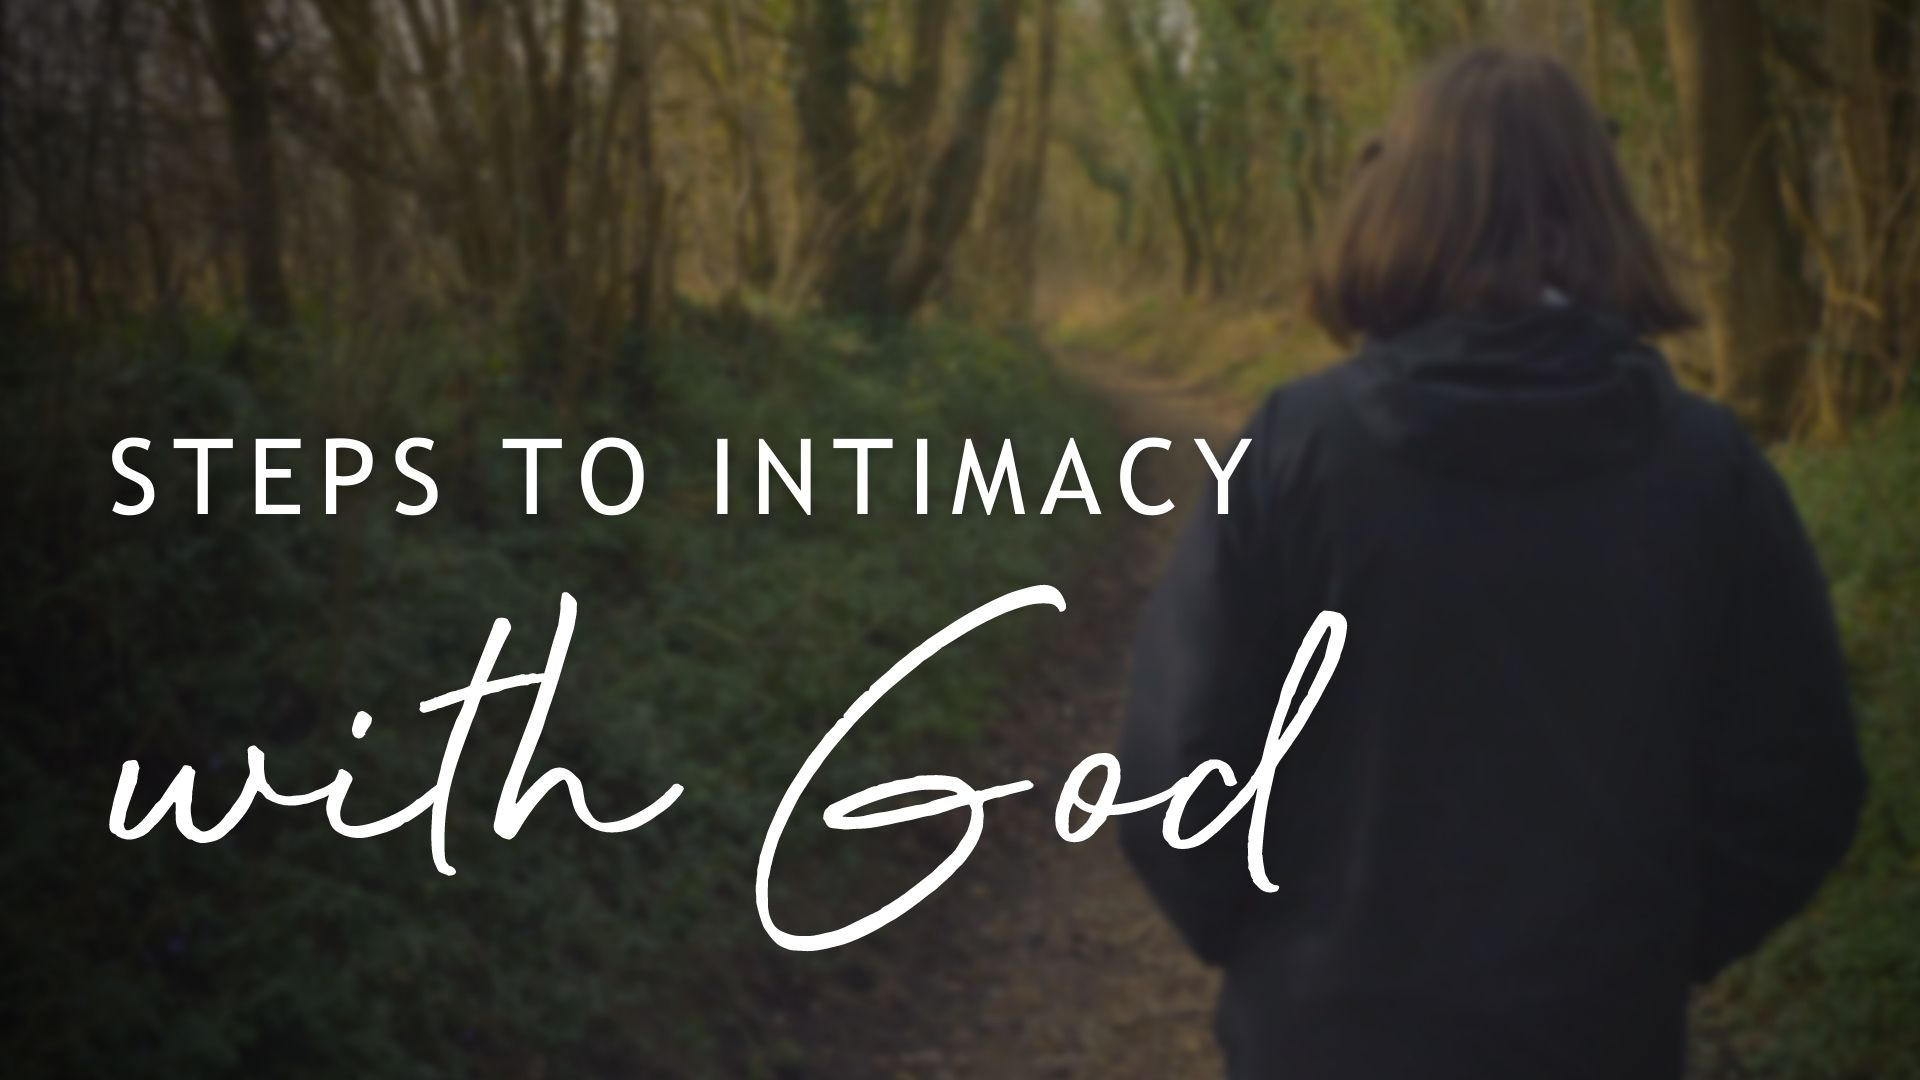 Intimate Communication with God, with Robert Ambs